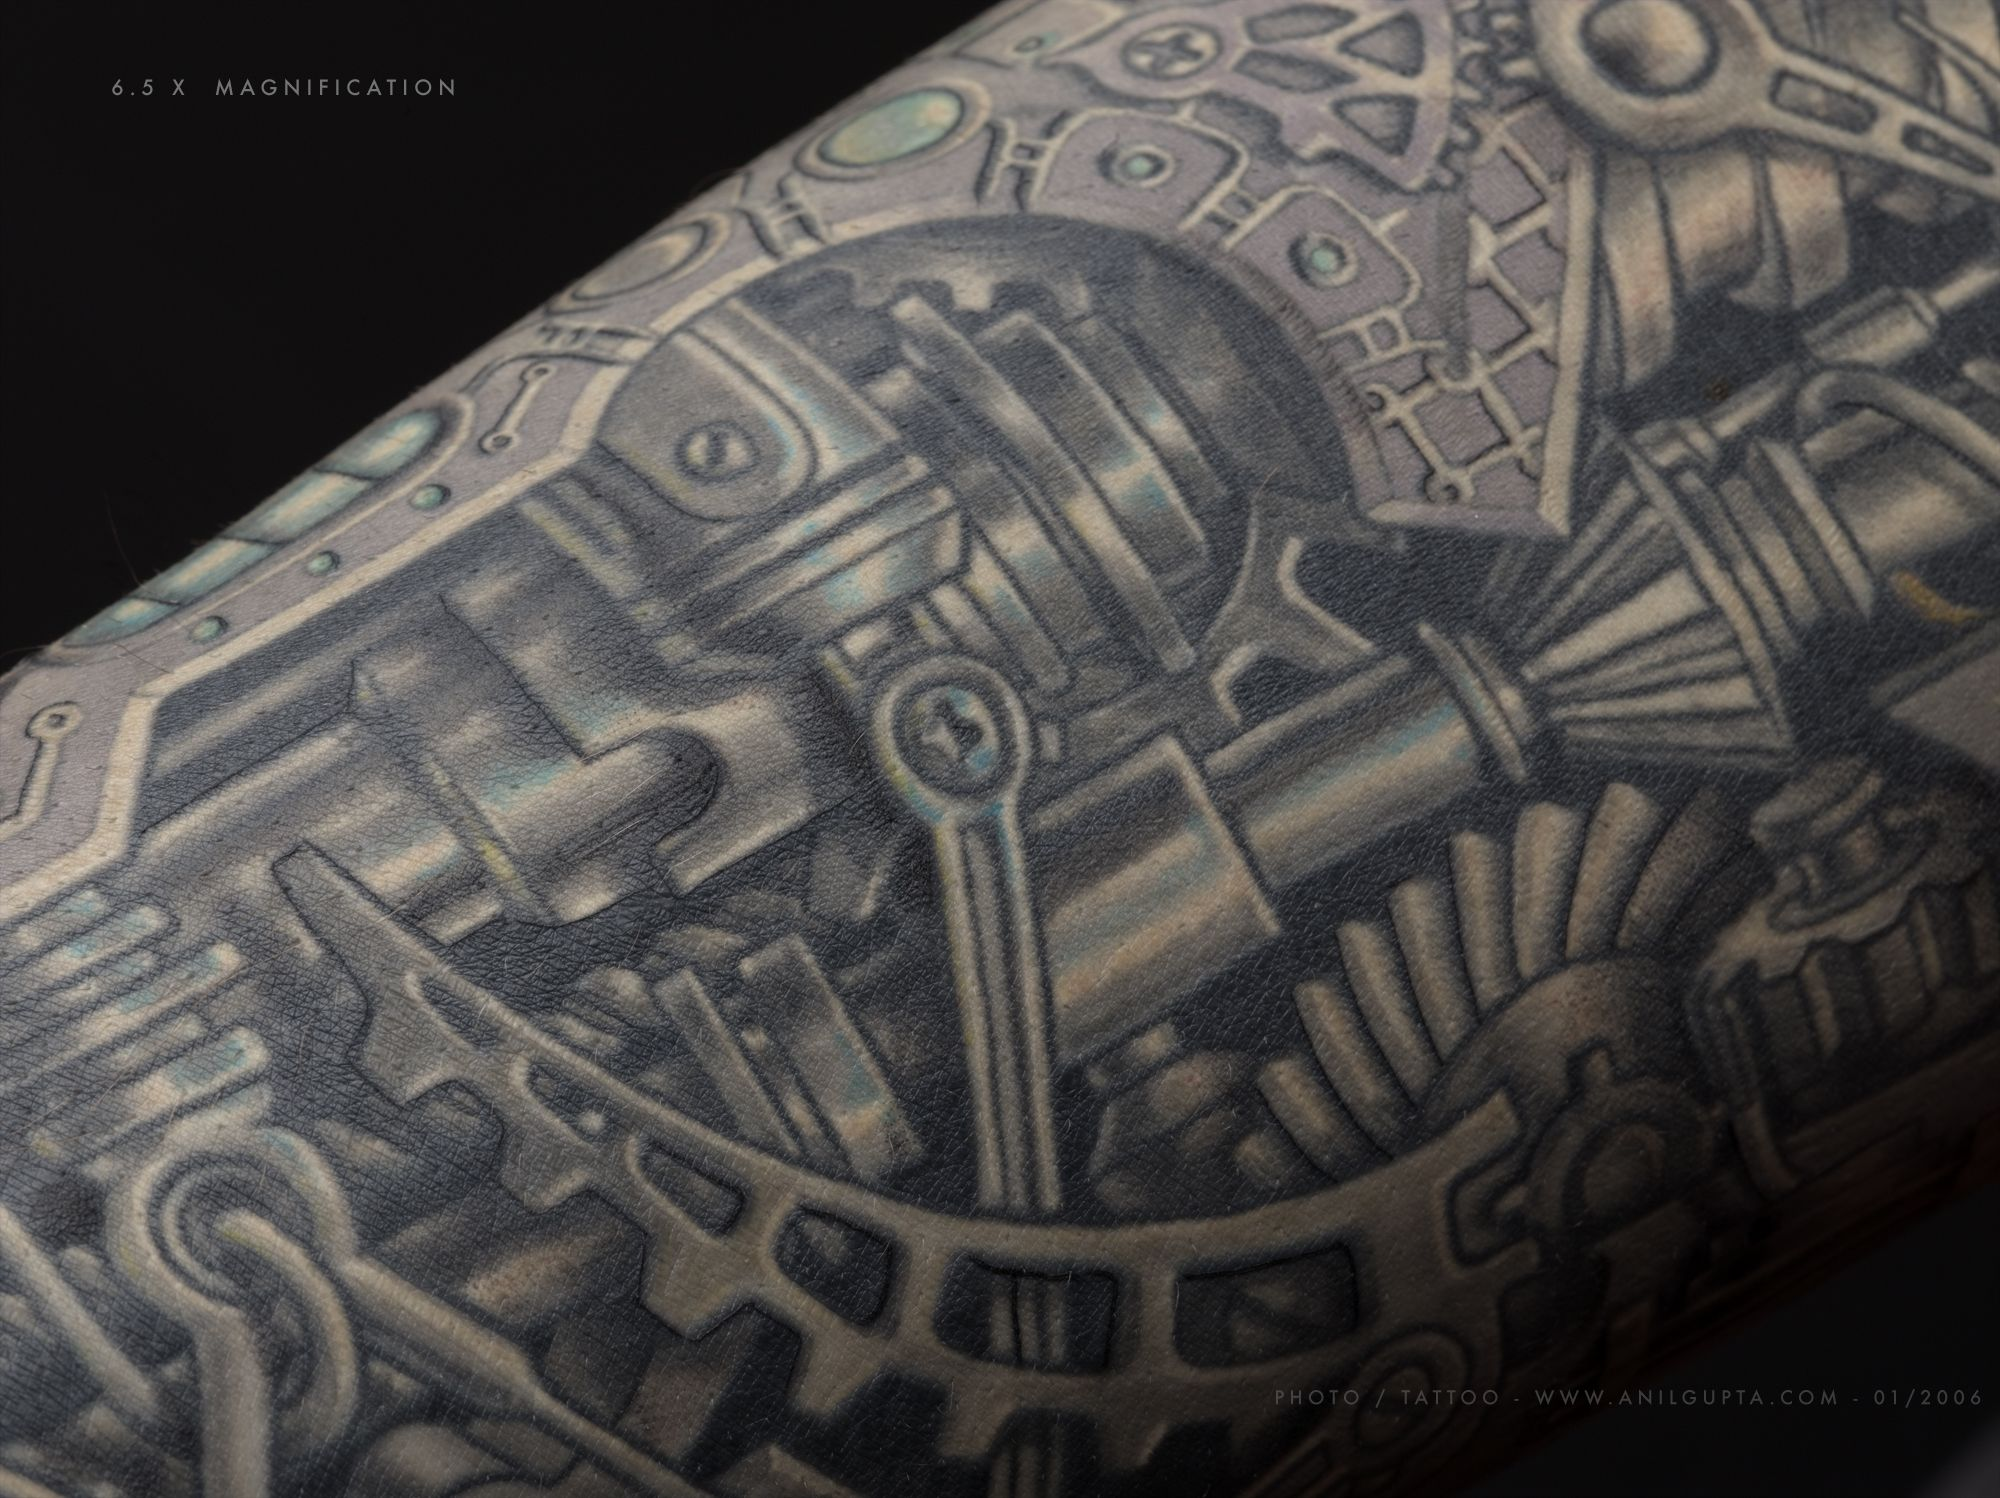 Biomechanical tattoos designs - 45 Awesome Biomechanical Tattoo Designs Biomechanical Tattoos Are Awesome There S No Better Way To Phrase It The Incredible Amount Of Detail Put Into